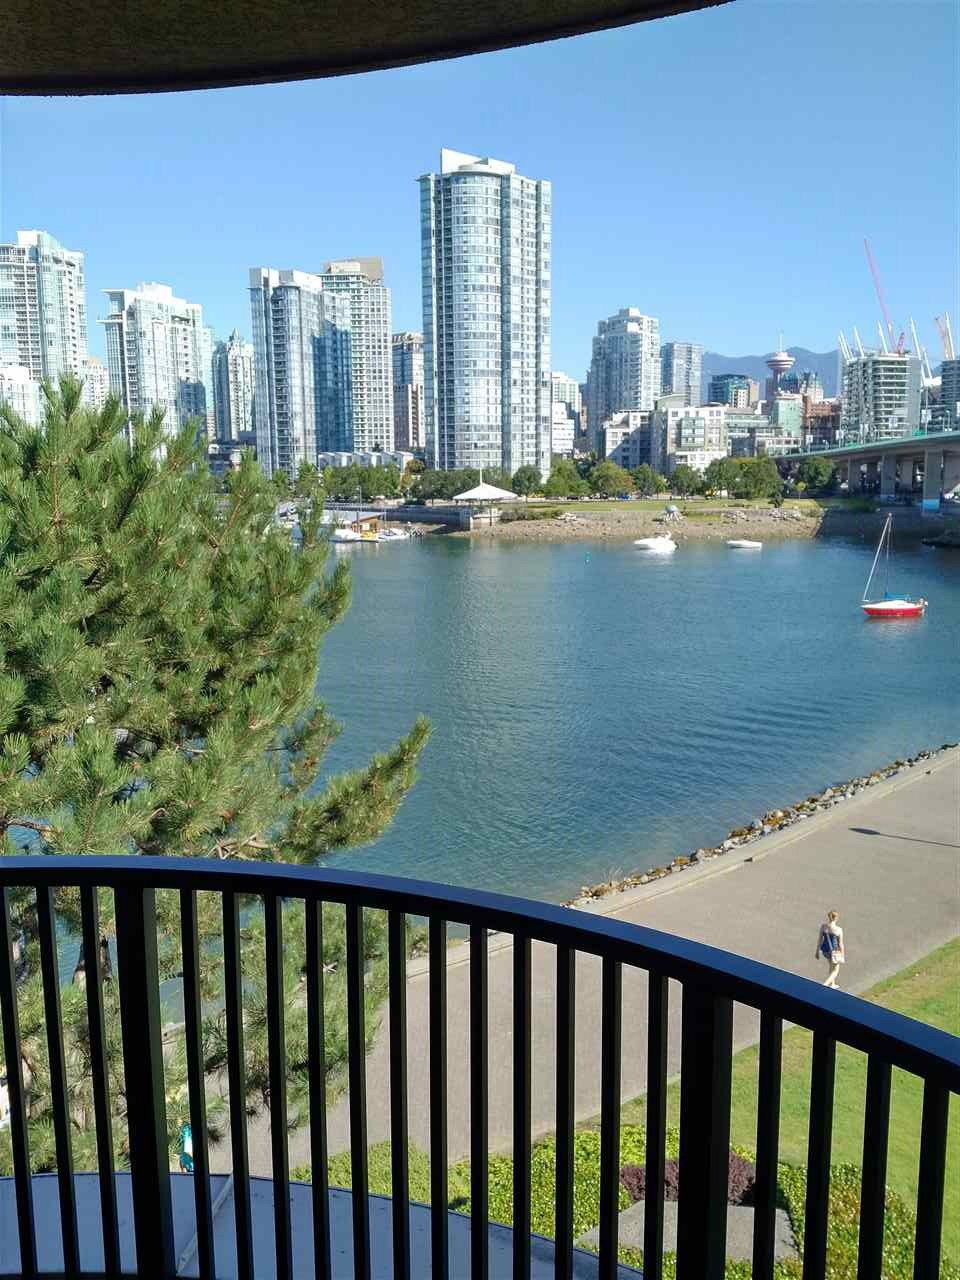 Main Photo: 411 1859 SPYGLASS Place in Vancouver: False Creek Condo for sale (Vancouver West)  : MLS®# R2100993